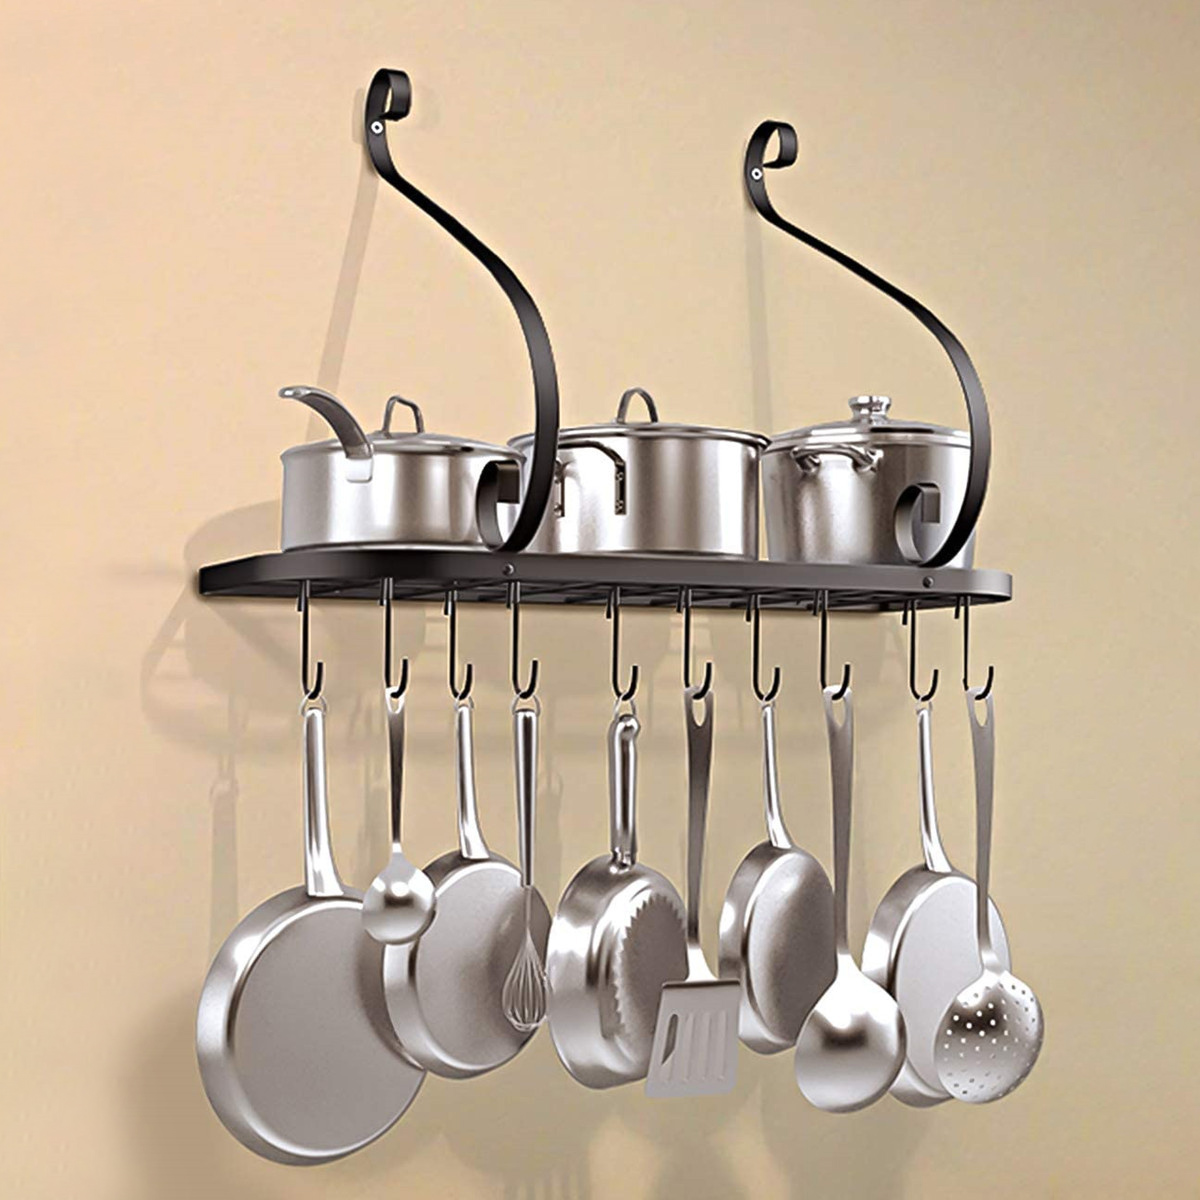 kitchen shelves wall mounted pots and pans rack with 10 hooks black grid wall mount pot rack kitchen cookware hanging organizer